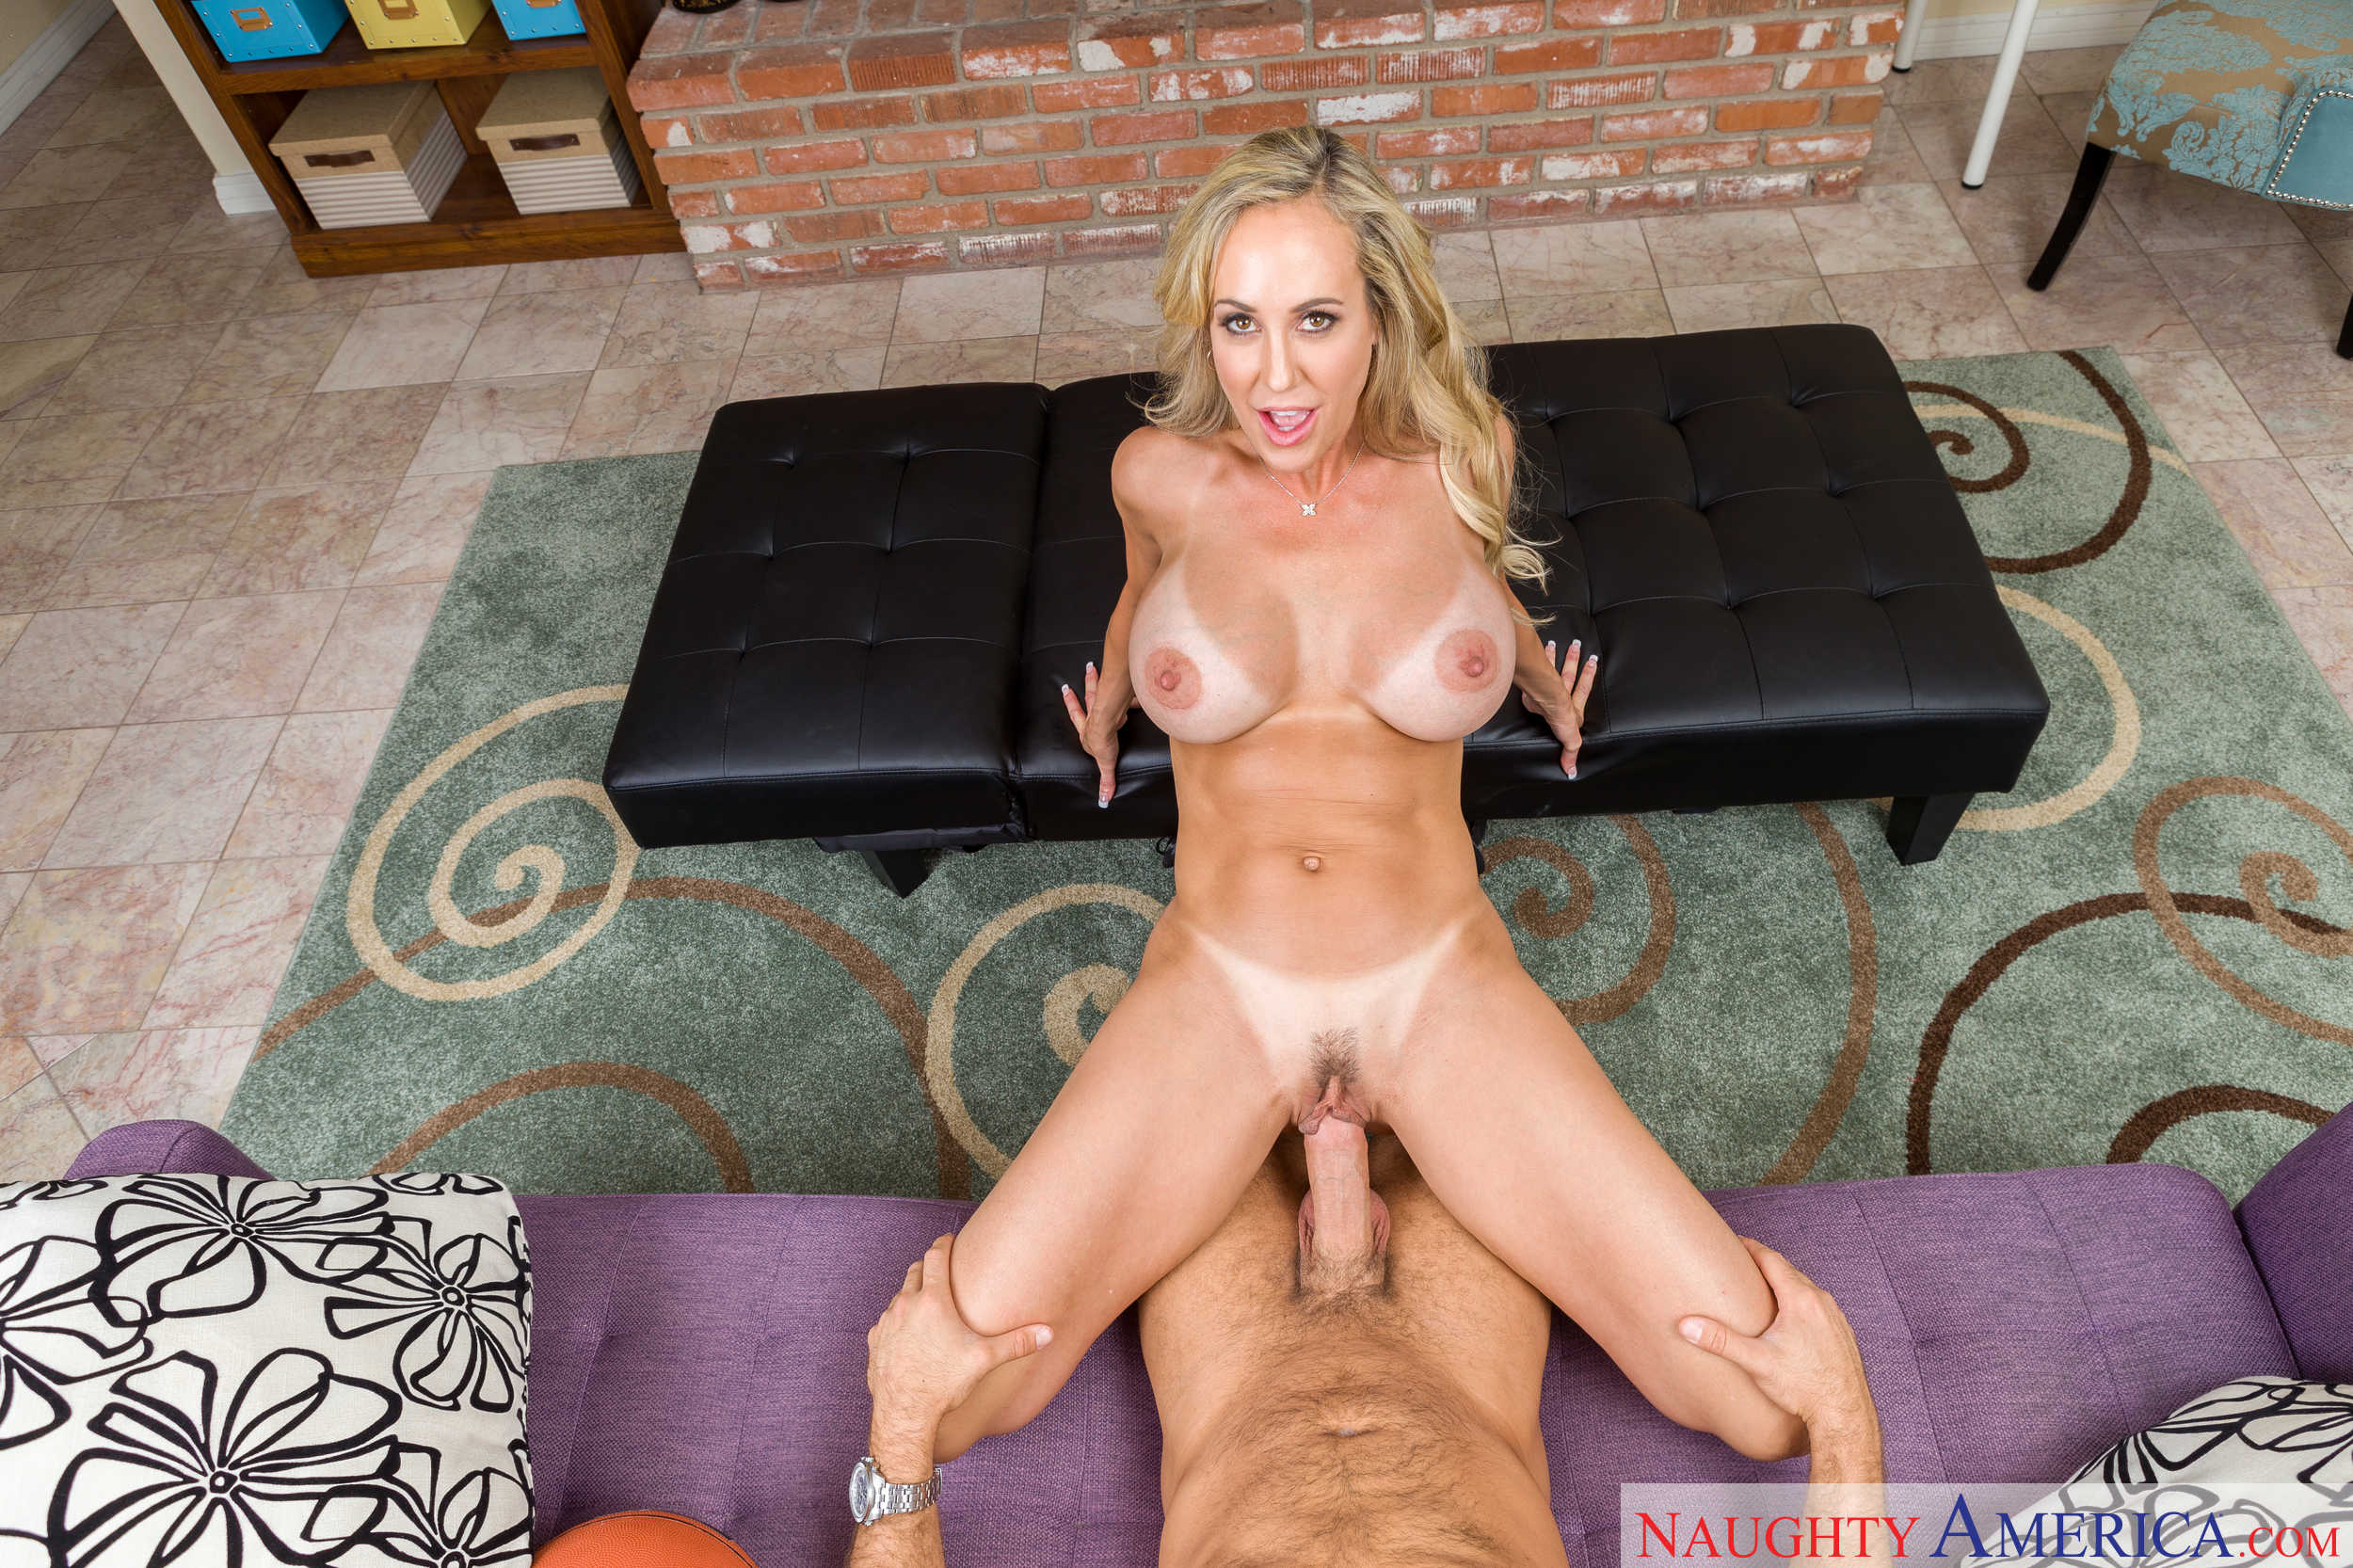 White step dad cream pies not his black step daughter 2